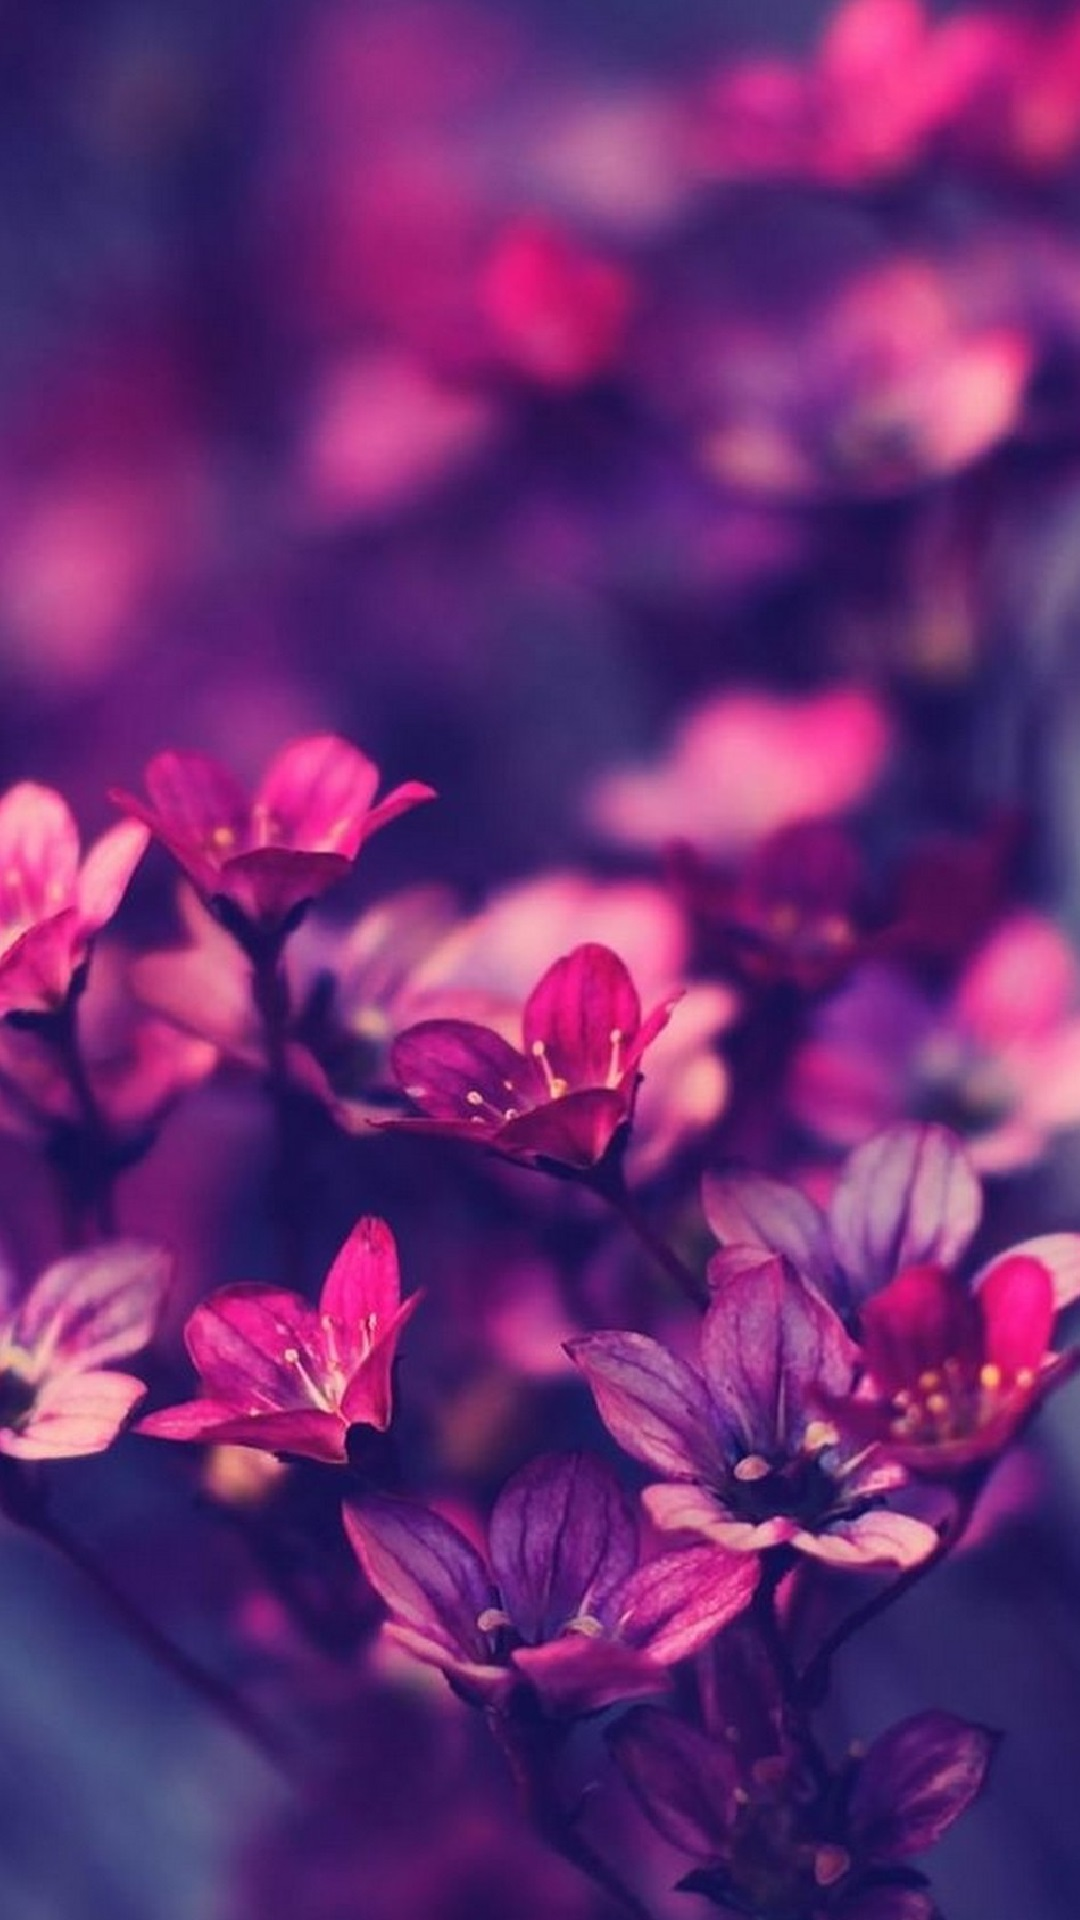 Flowers Purple iPhone Wallpaper Tumblr with high-resolution 1080x1920 pixel. You can set as wallpaper for Apple iPhone X, XS Max, XR, 8, 7, 6, SE, iPad. Enjoy and share your favorite HD wallpapers and background images